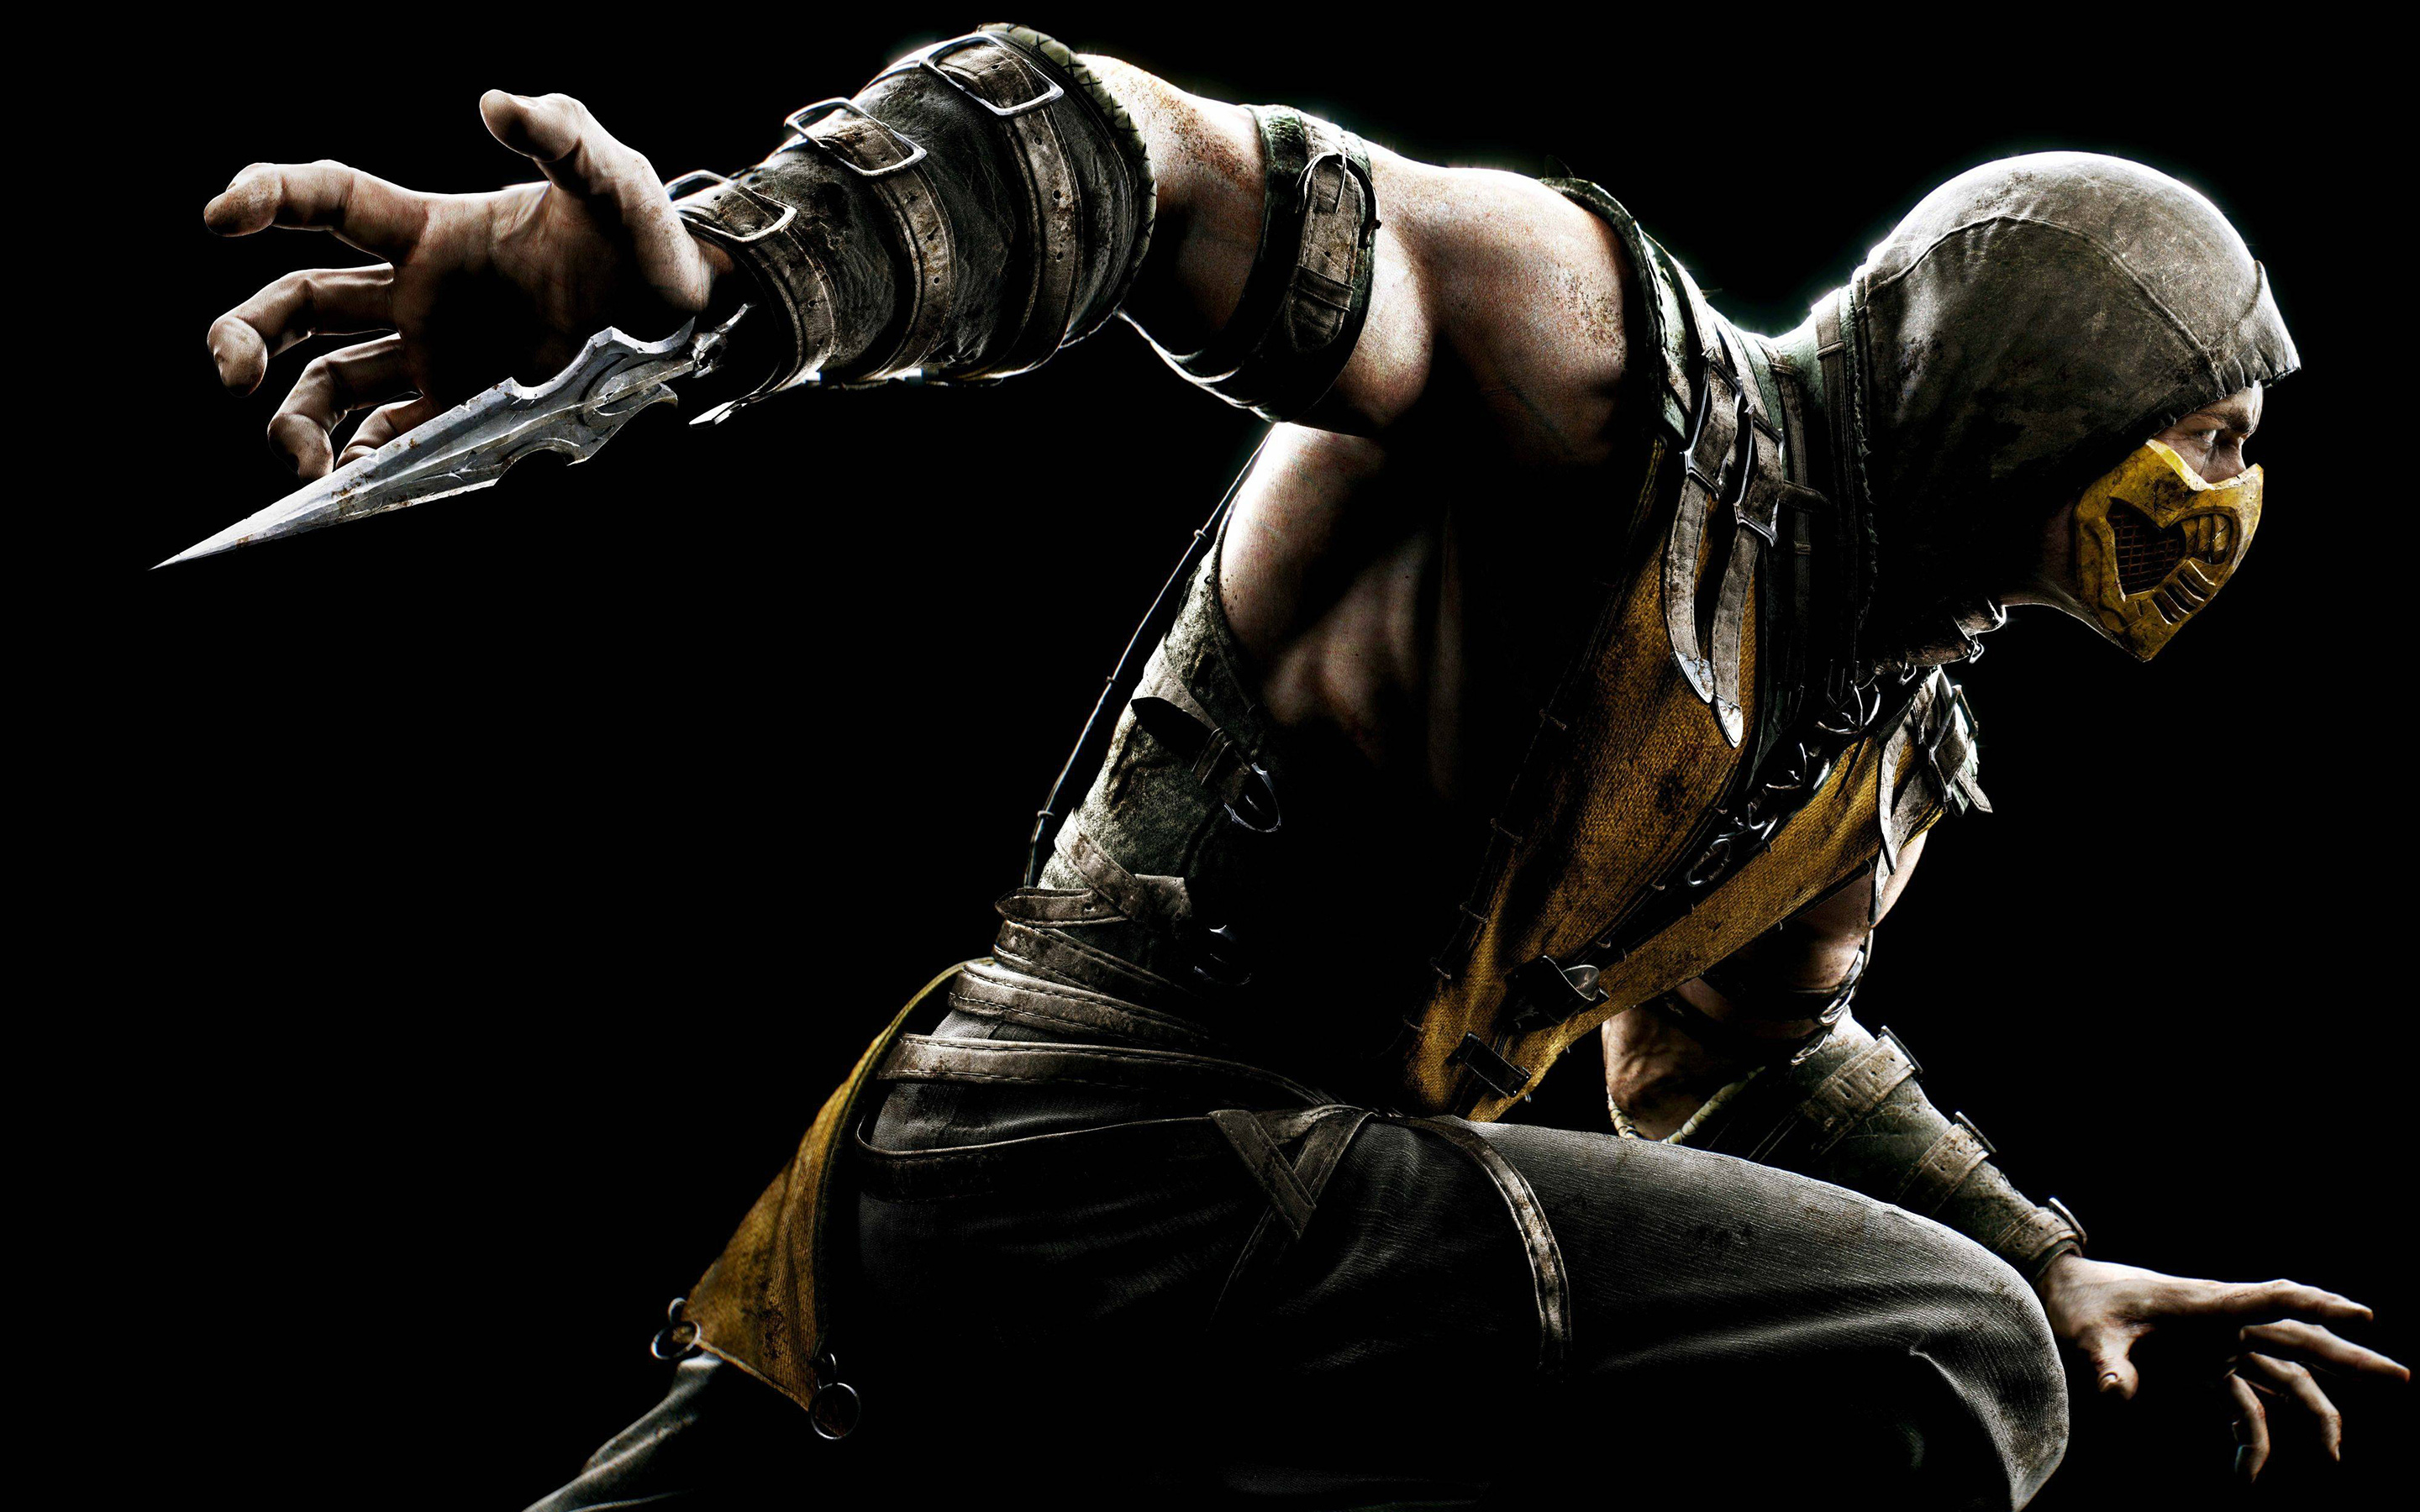 Scorpion Mortal Kombat Wallpapers HD